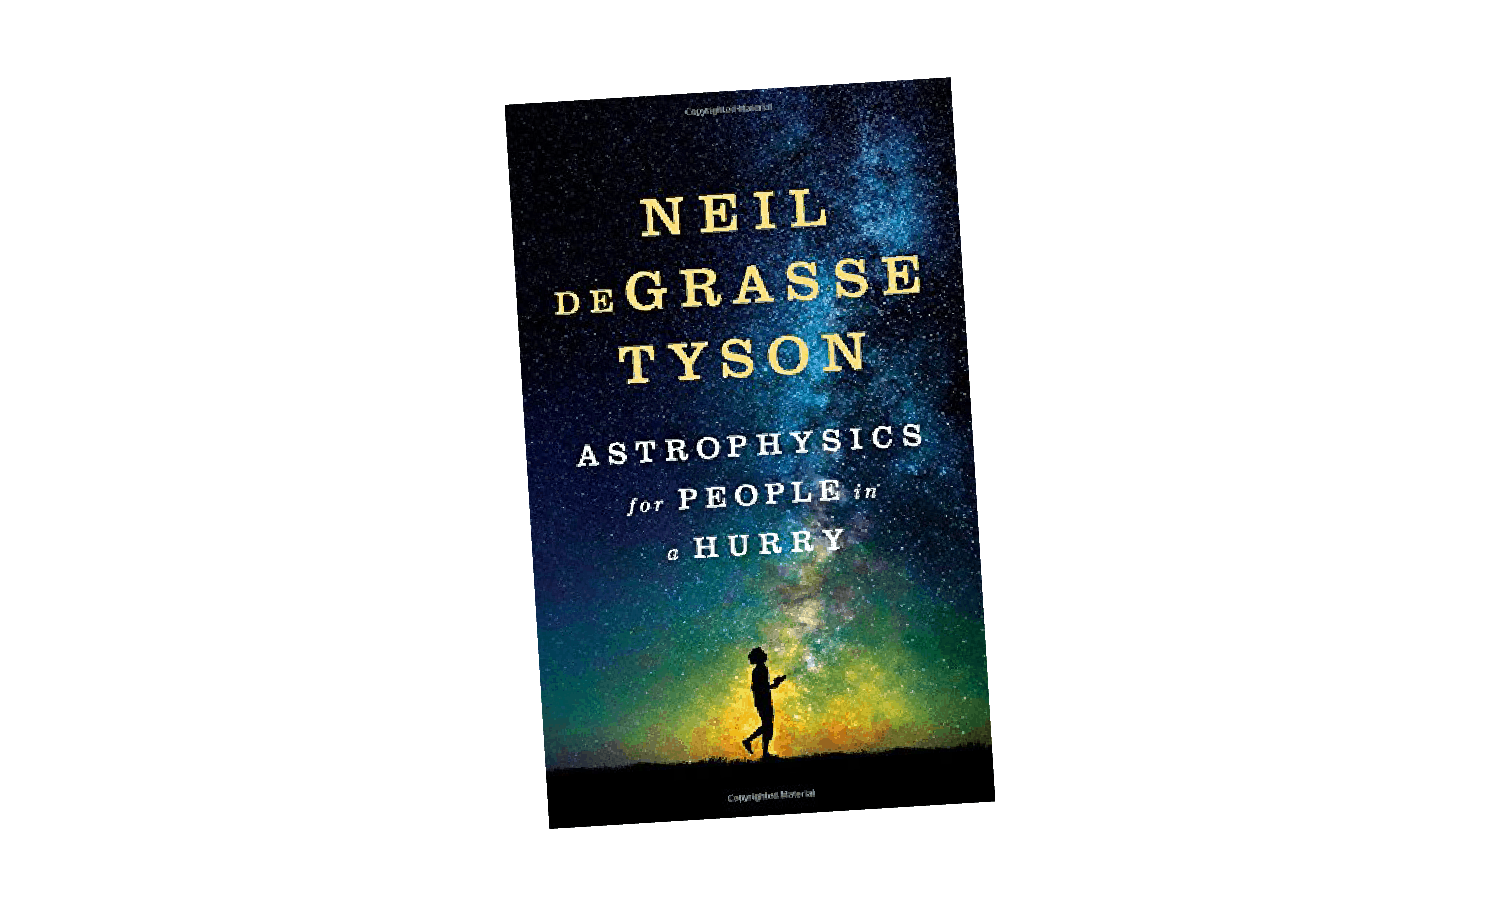 Neil DeGrasse Tyson's Astrophics for People in a Hurry